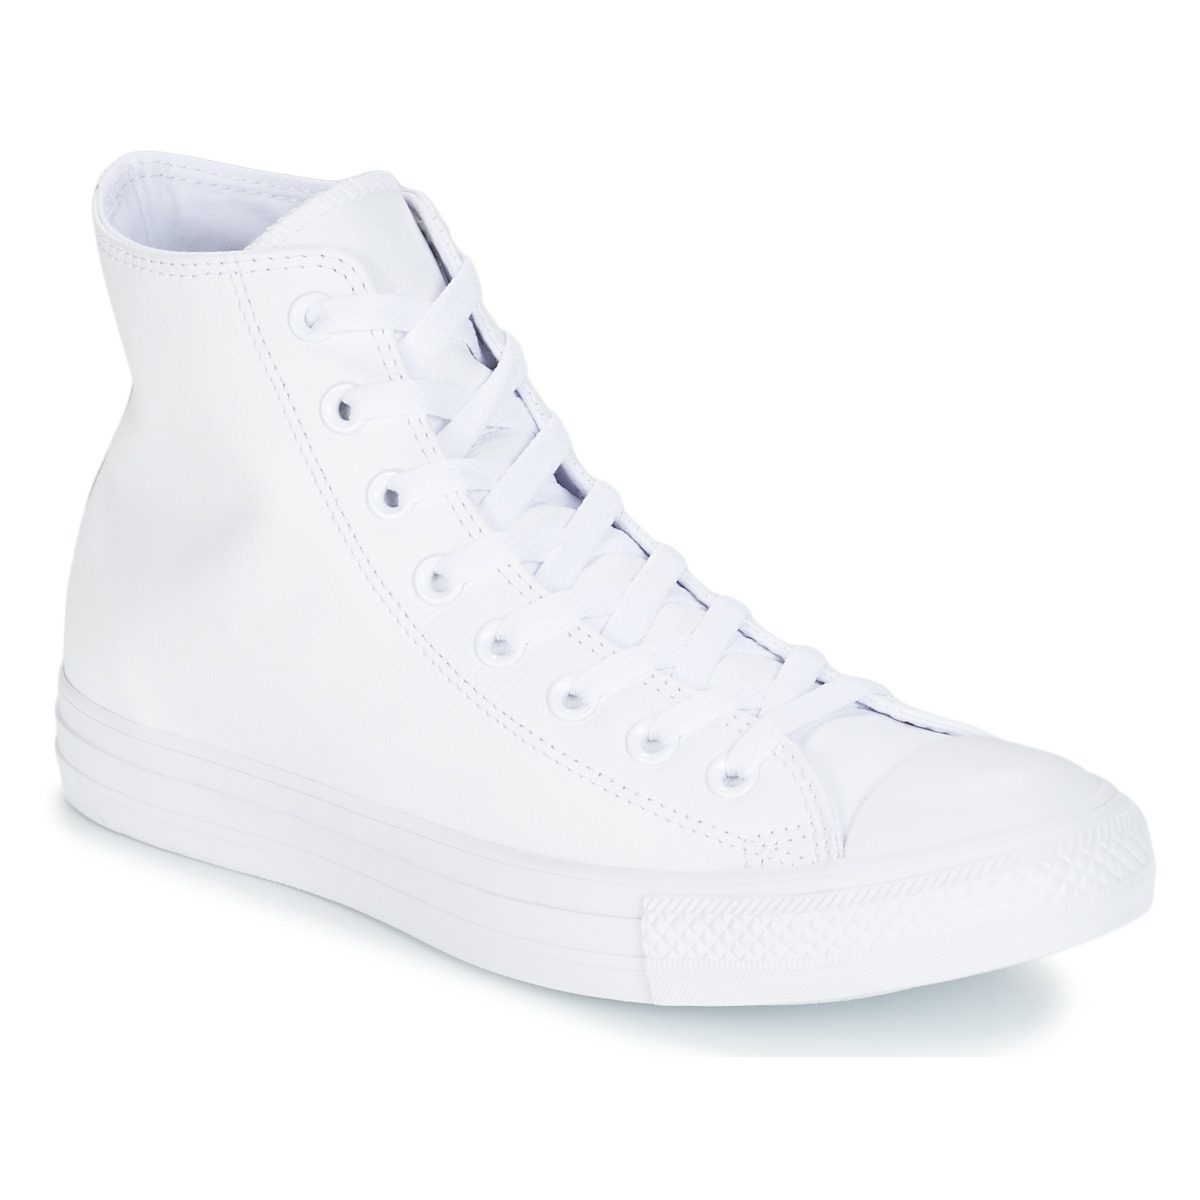 Converse ALL STAR MONOCHROME CUIR HI Weiss